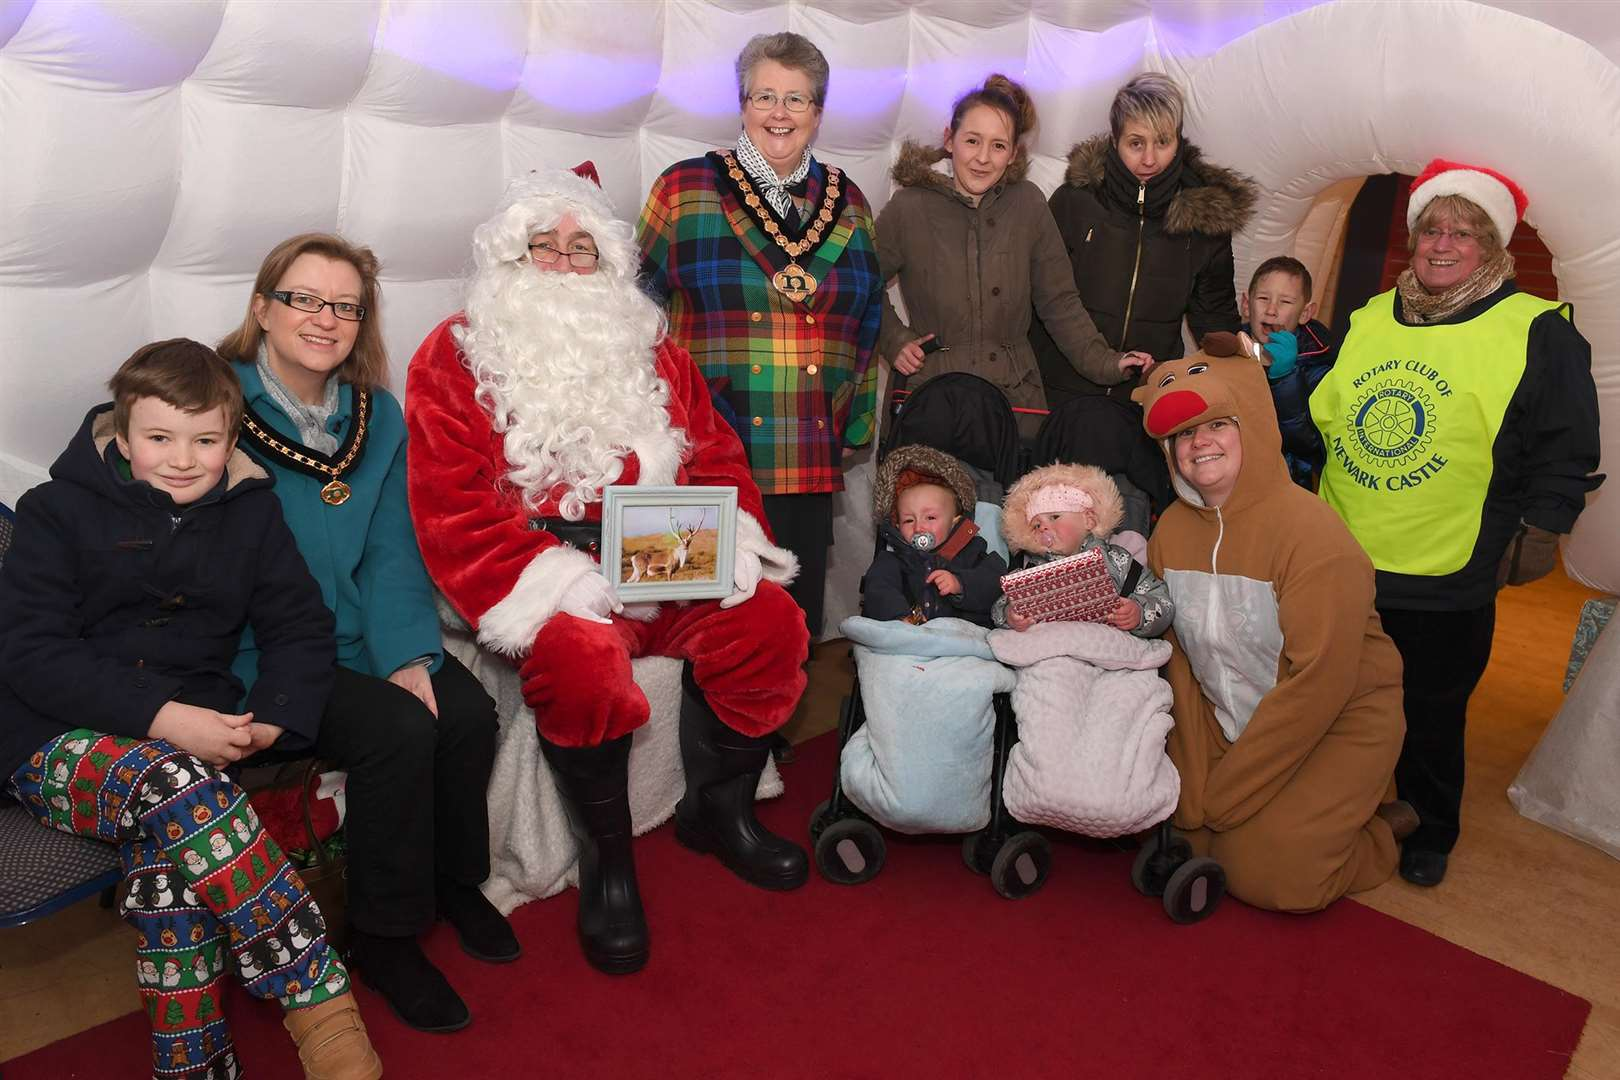 The chairman of NottinghamshireCounty Council Mrs Sue Saddington at Newark Castle Rotary Club Santa's Grotto. Left to right her grandson William Saddington 10, daughter Caroline Saddington, Father Christmas, Mrs Saddington, Miss Courtney Nixon, Miss Rachel Nixon, Kaylum Weir 6, and club president Glen Foreman. Front, left to right,Bentley Weir, De-Anna Weir and Emma James. (6034861)